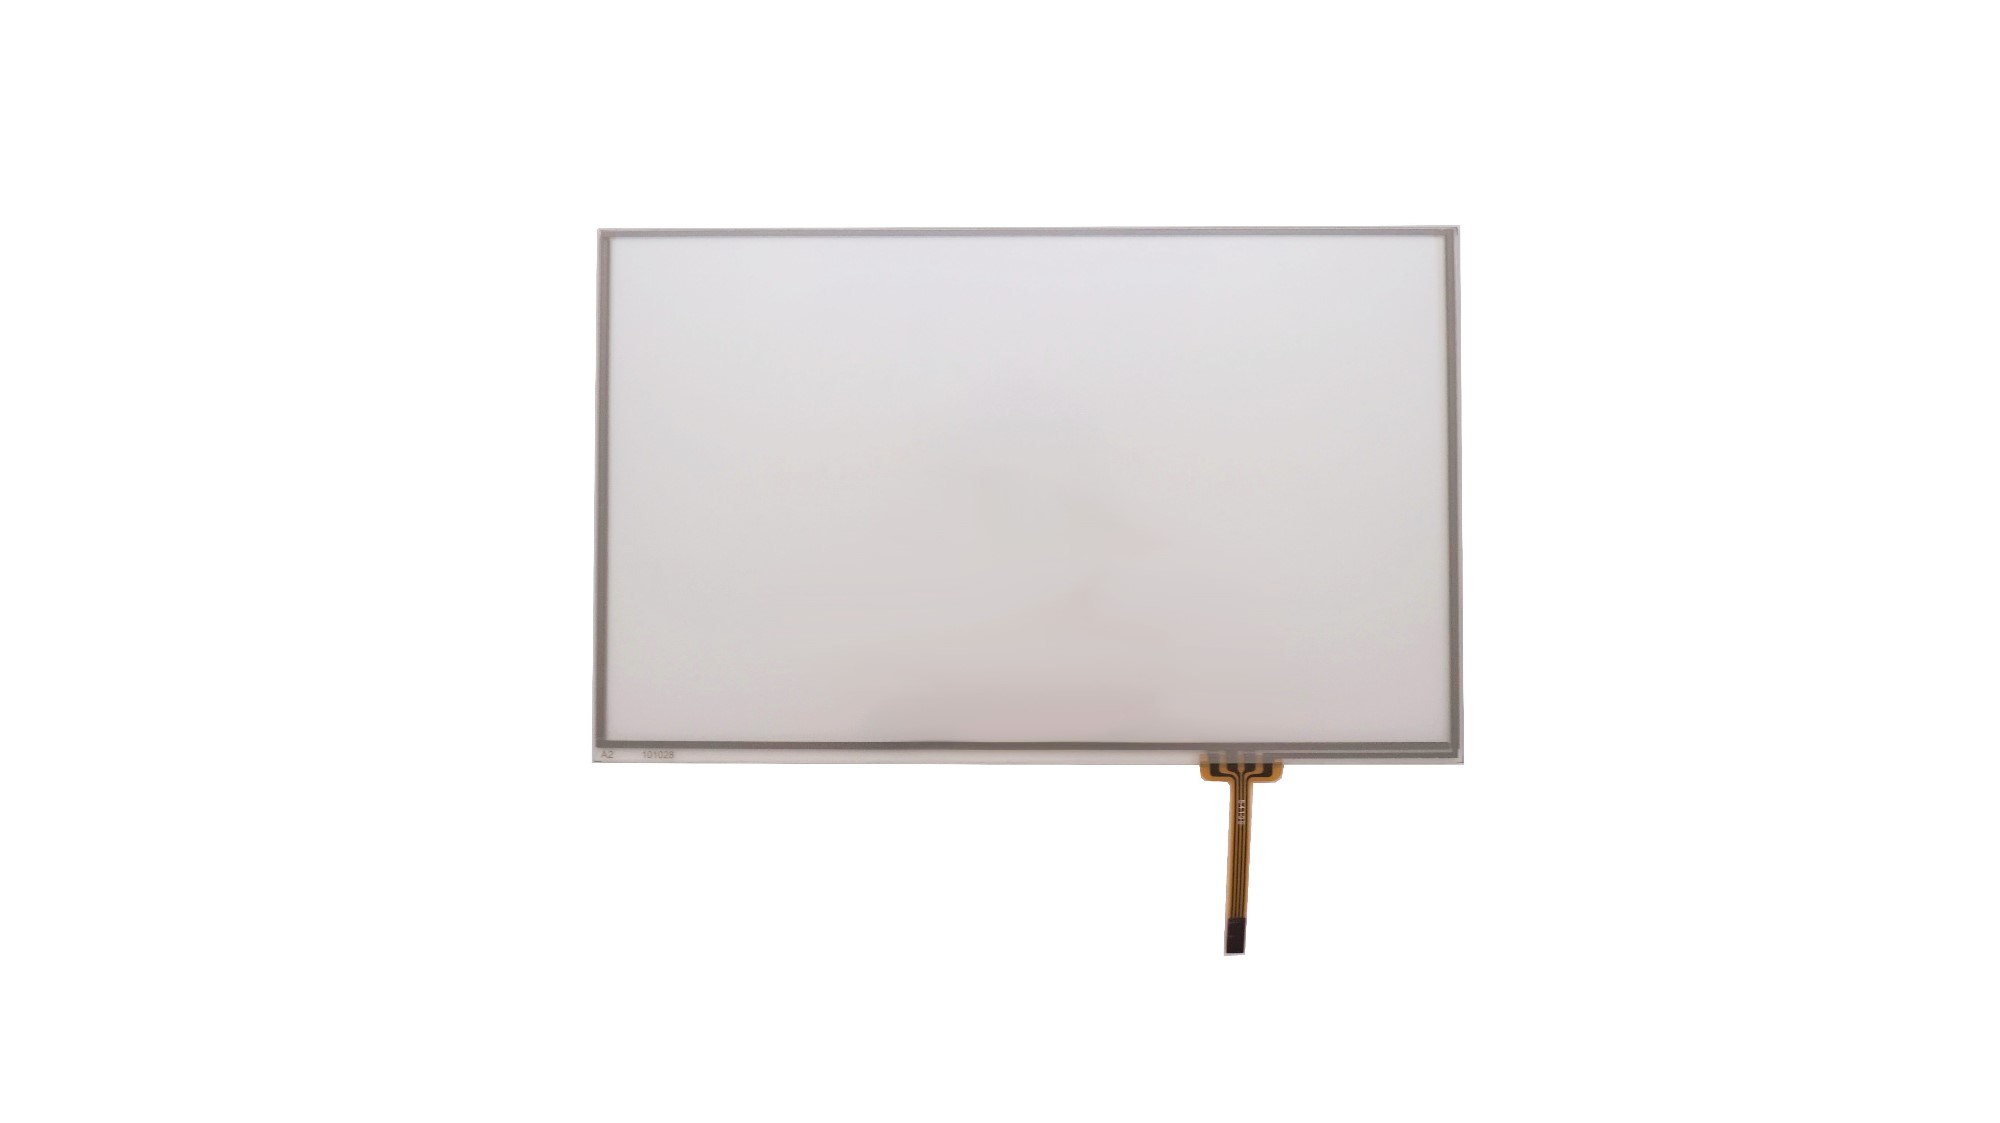 4-wire Resistive Touch Screen 10.1 Inch With I2c Interface